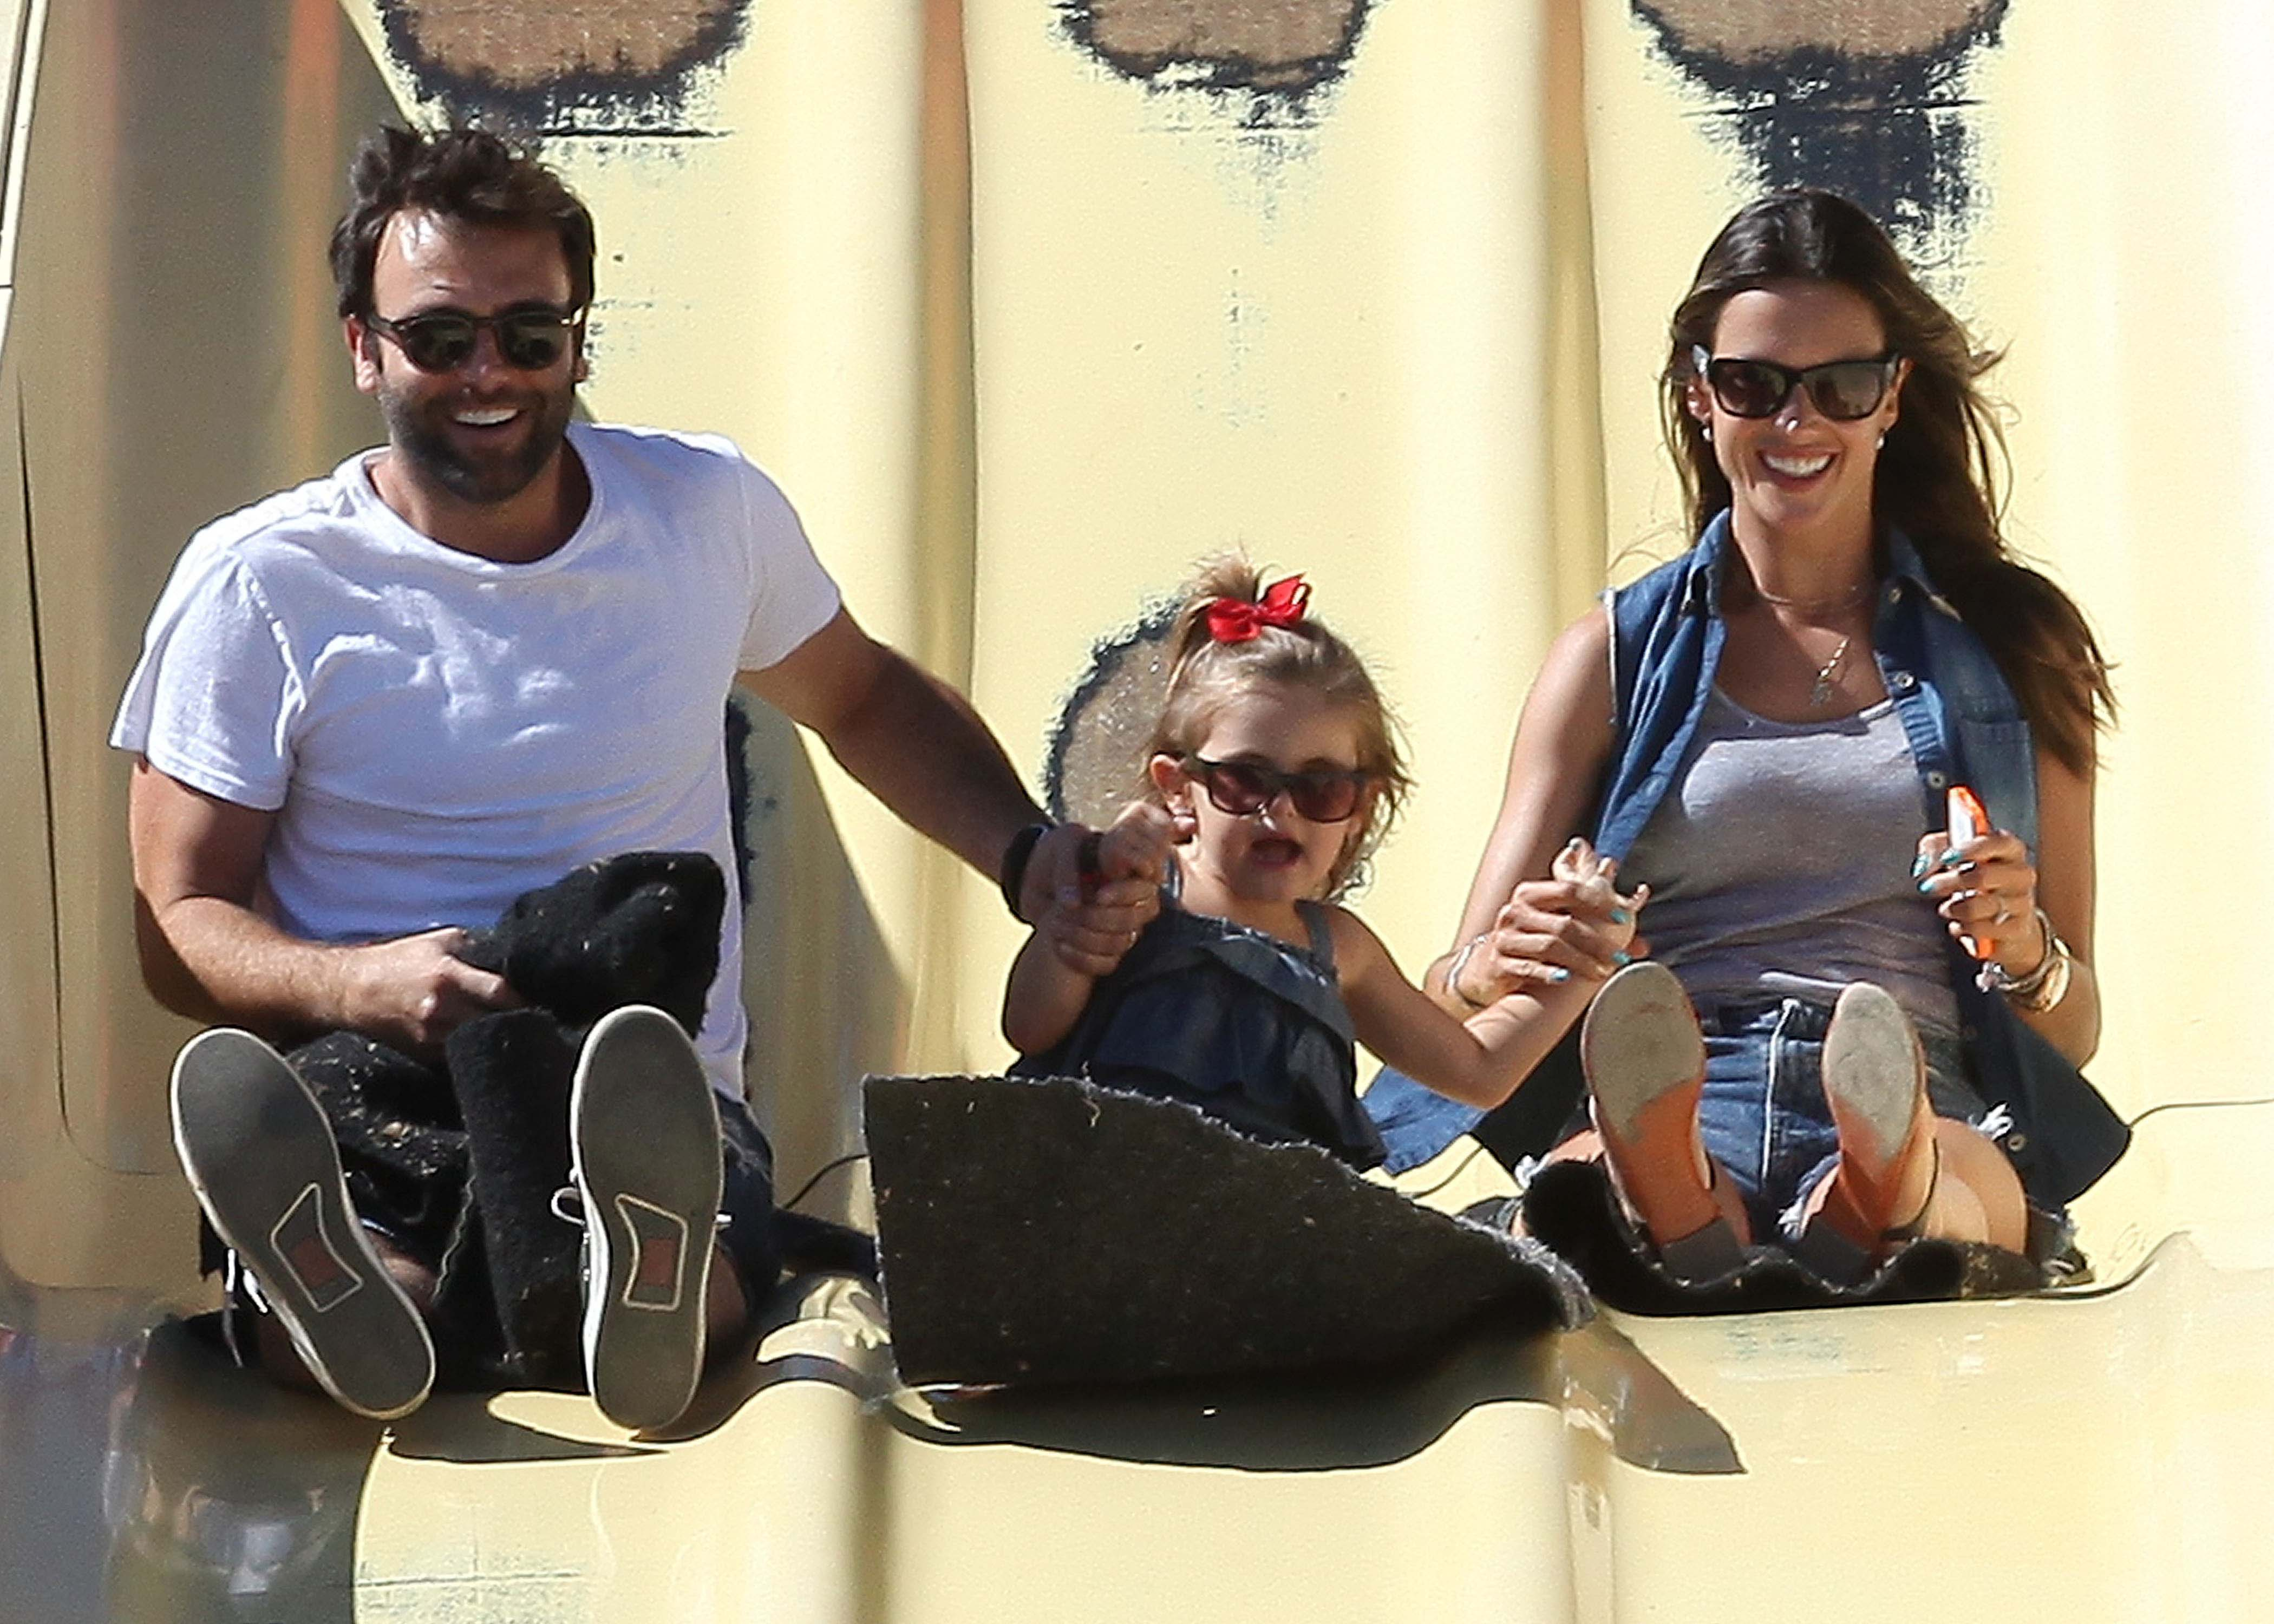 Alessandra Ambrosio and Jamie Mazur went on a slide with daughter Anja at the Malibu Chili Cook-Off.